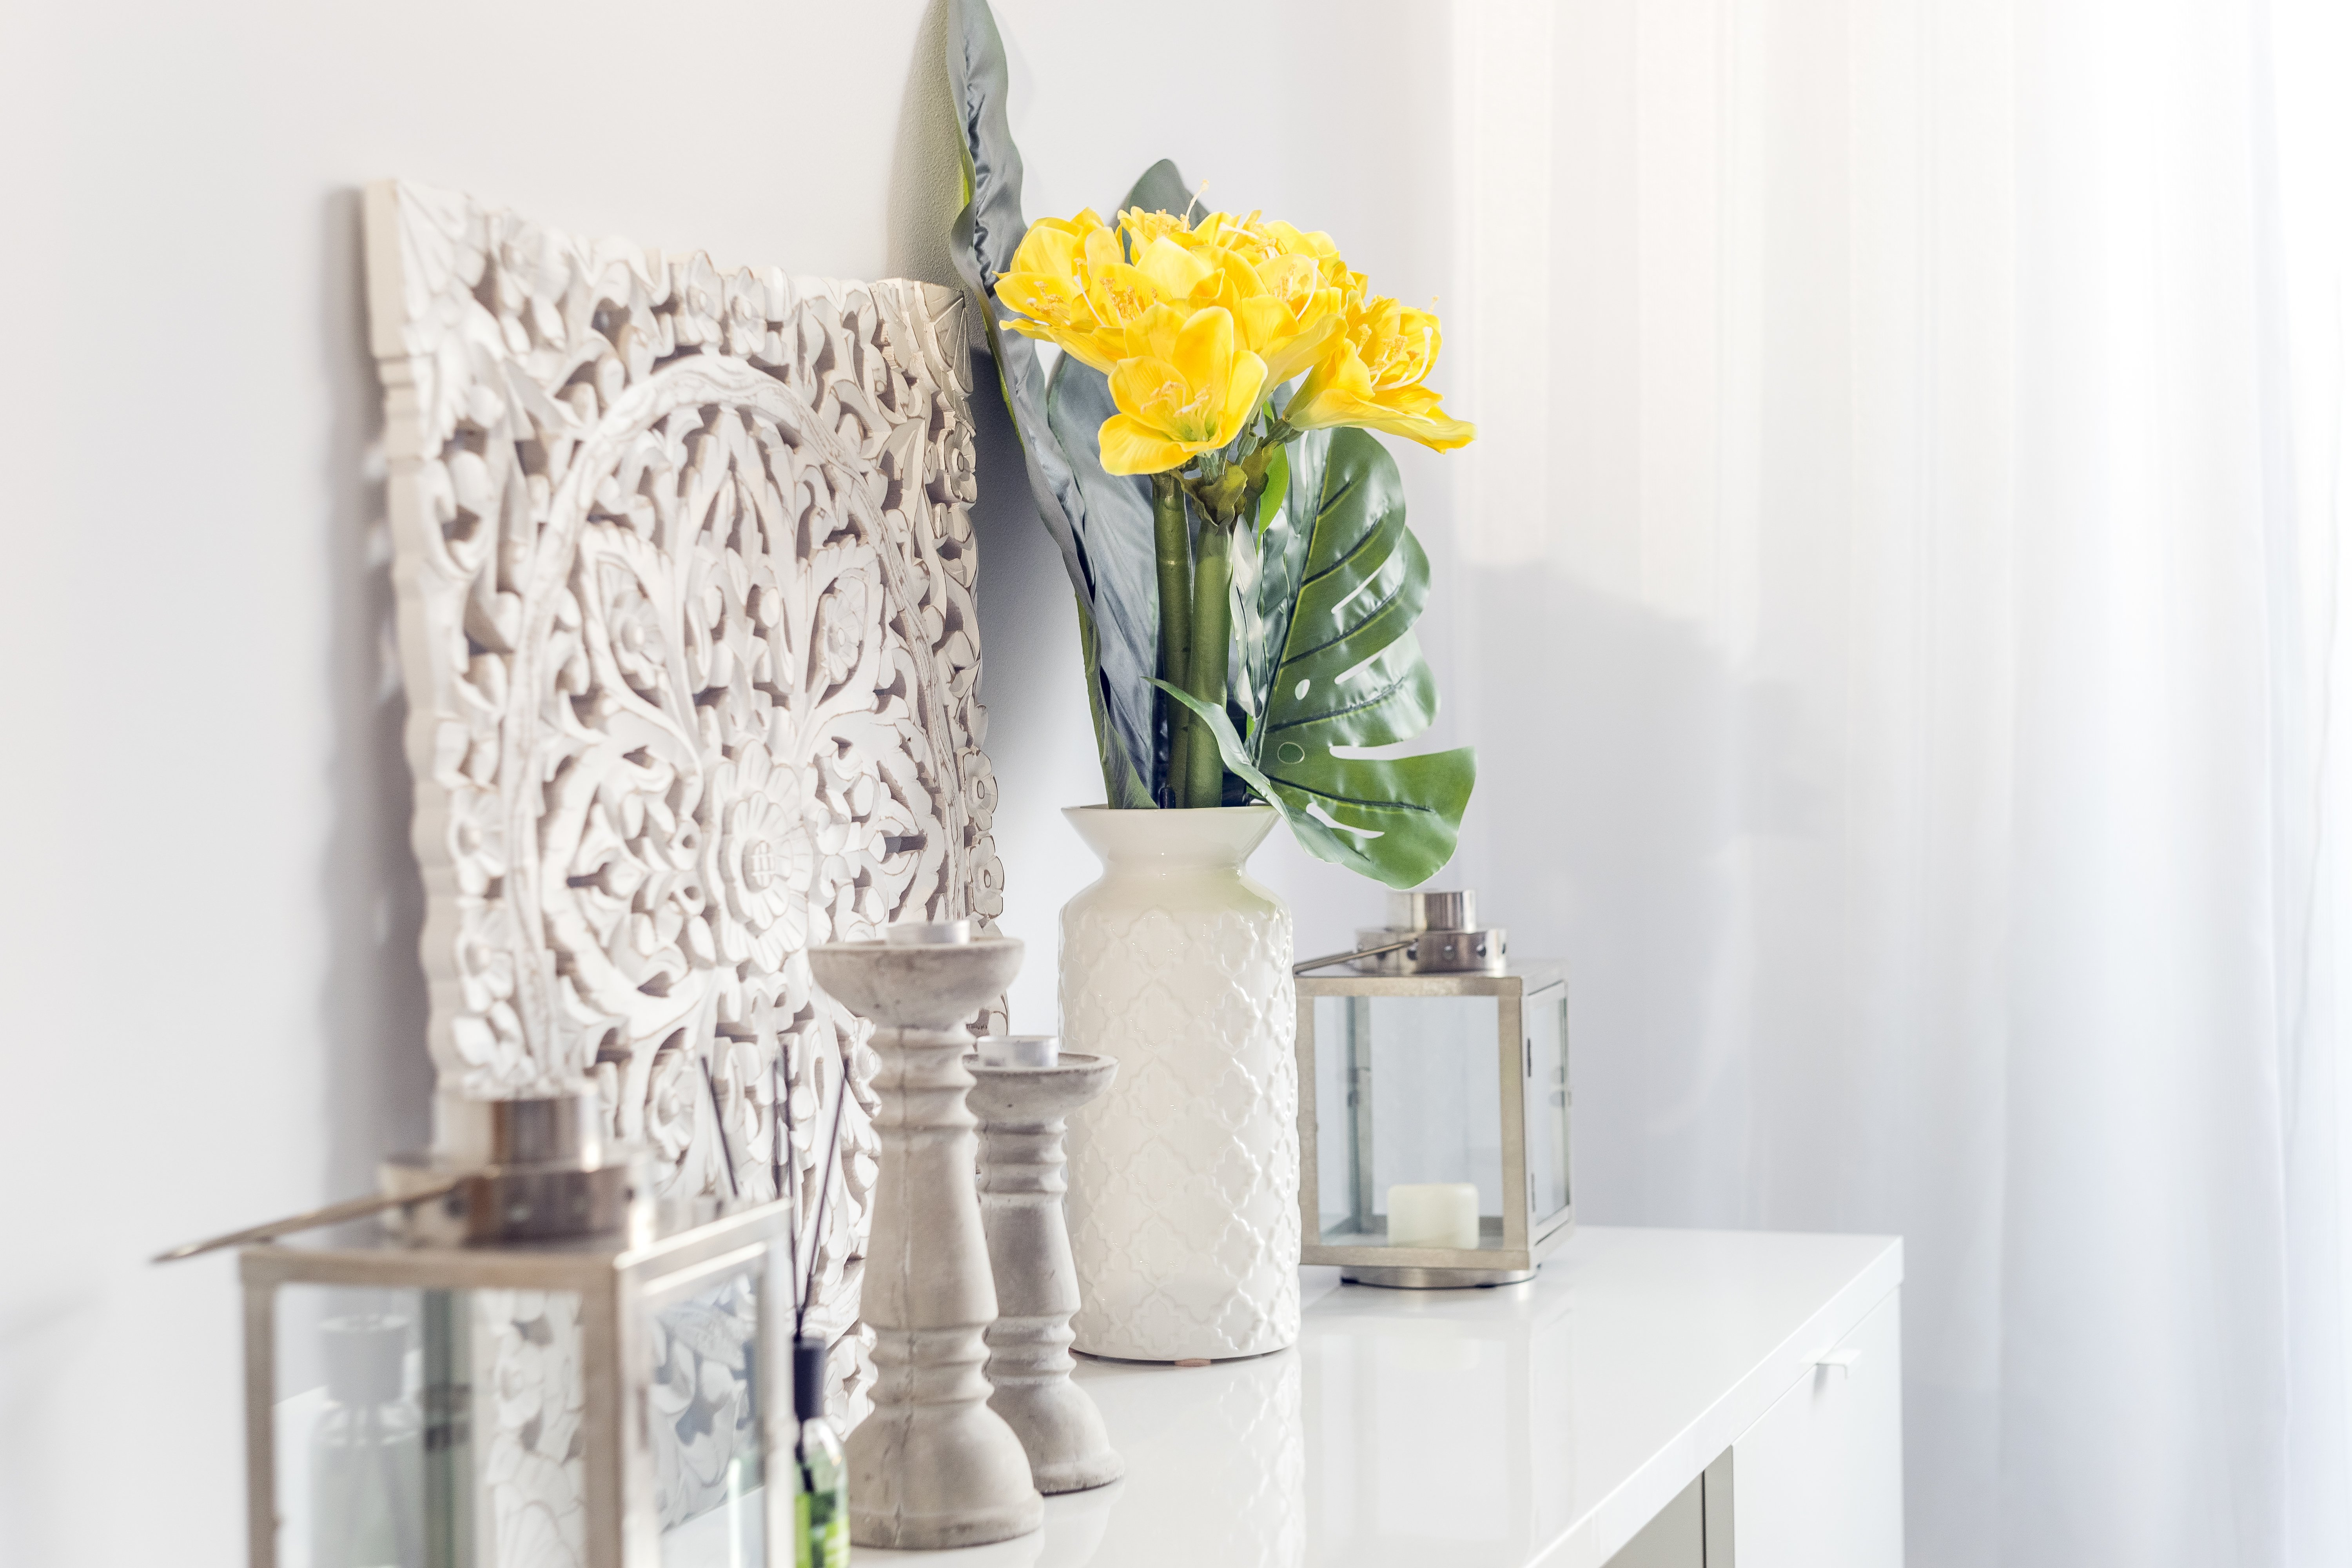 Yellow flowers in ceramic vase with wooden candlesticks and lantern decorating a shelf in a living room